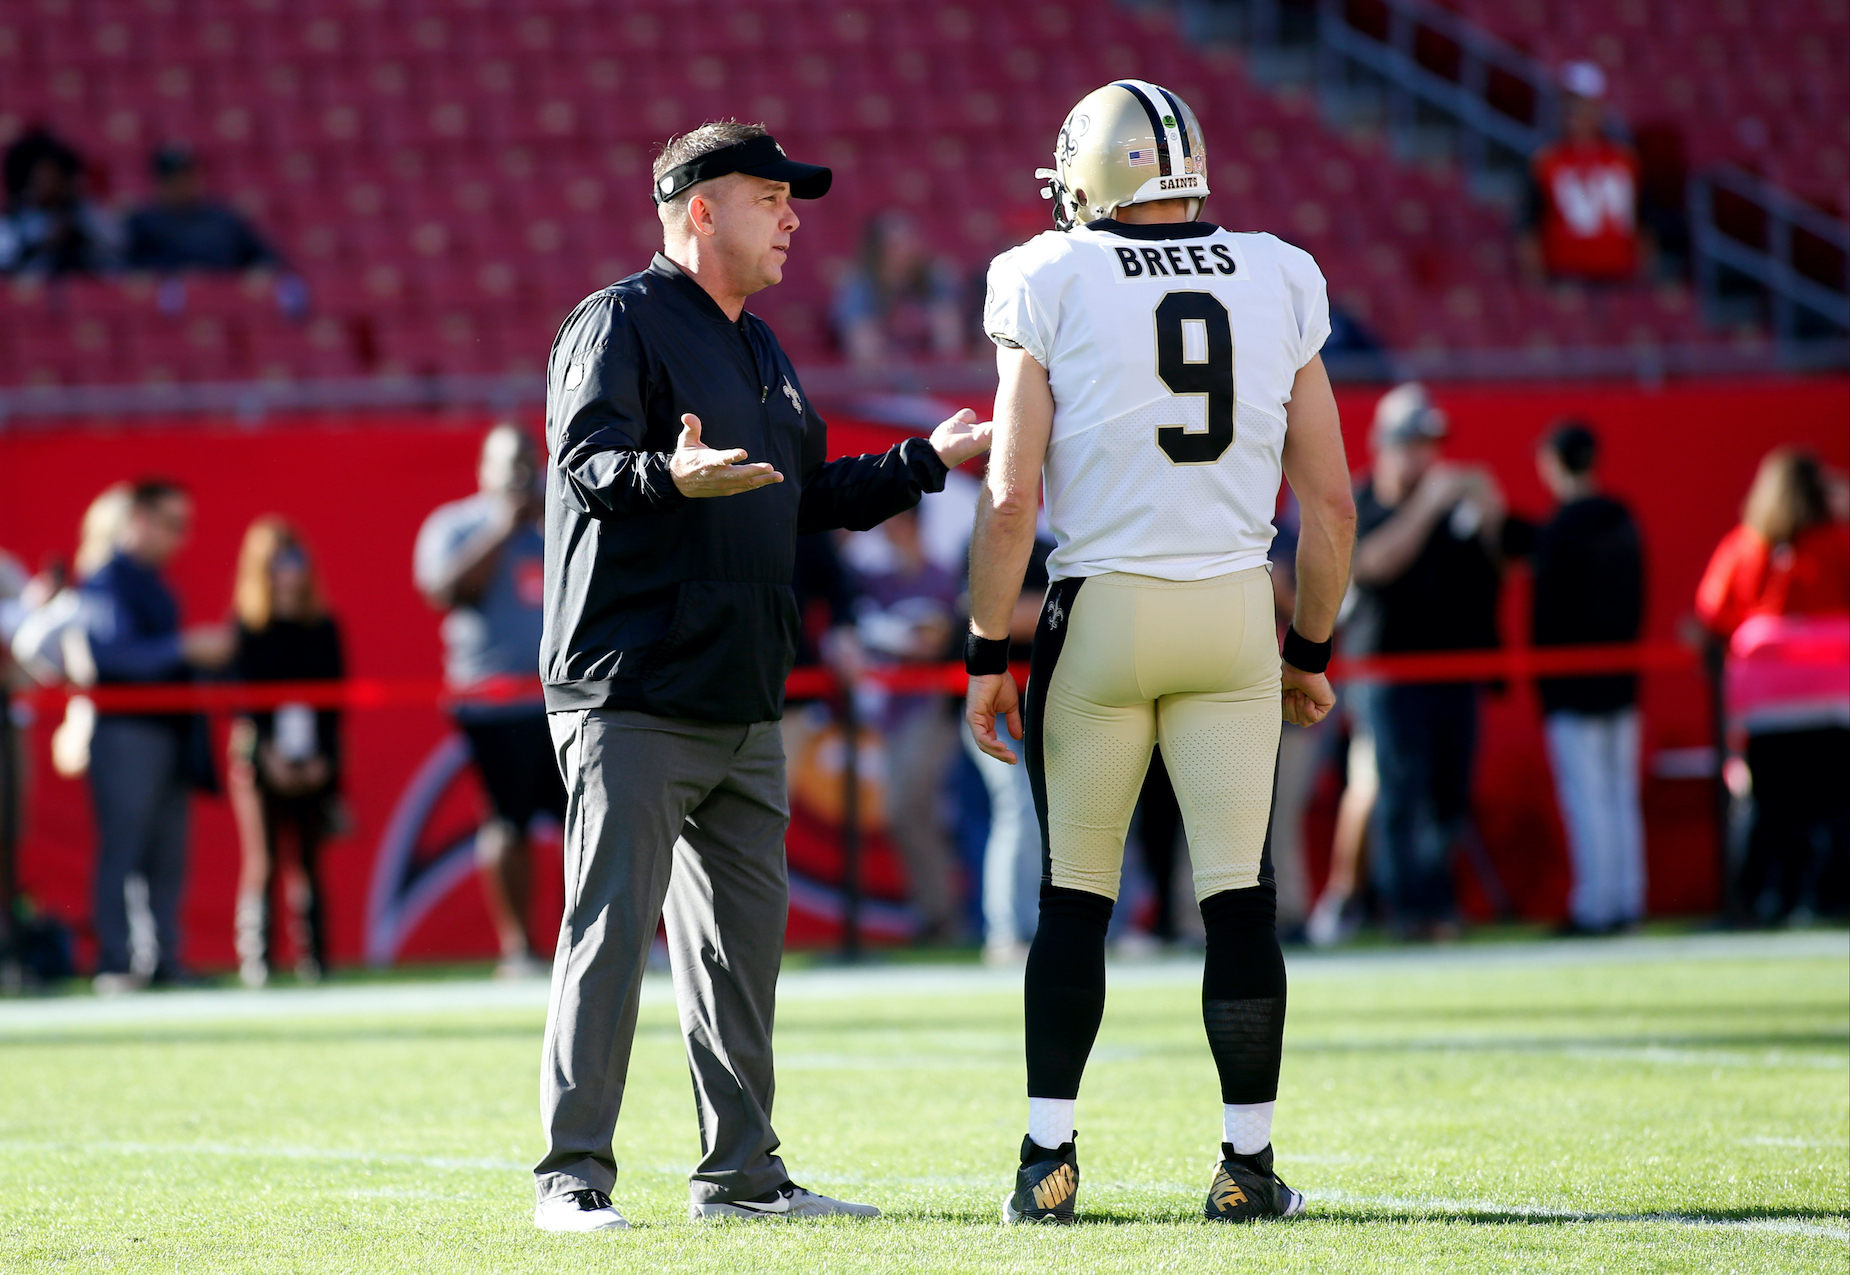 New Orleans Saints head coach Sean Payton is reportedly planning on replacing Drew Brees with Jameis Winston.